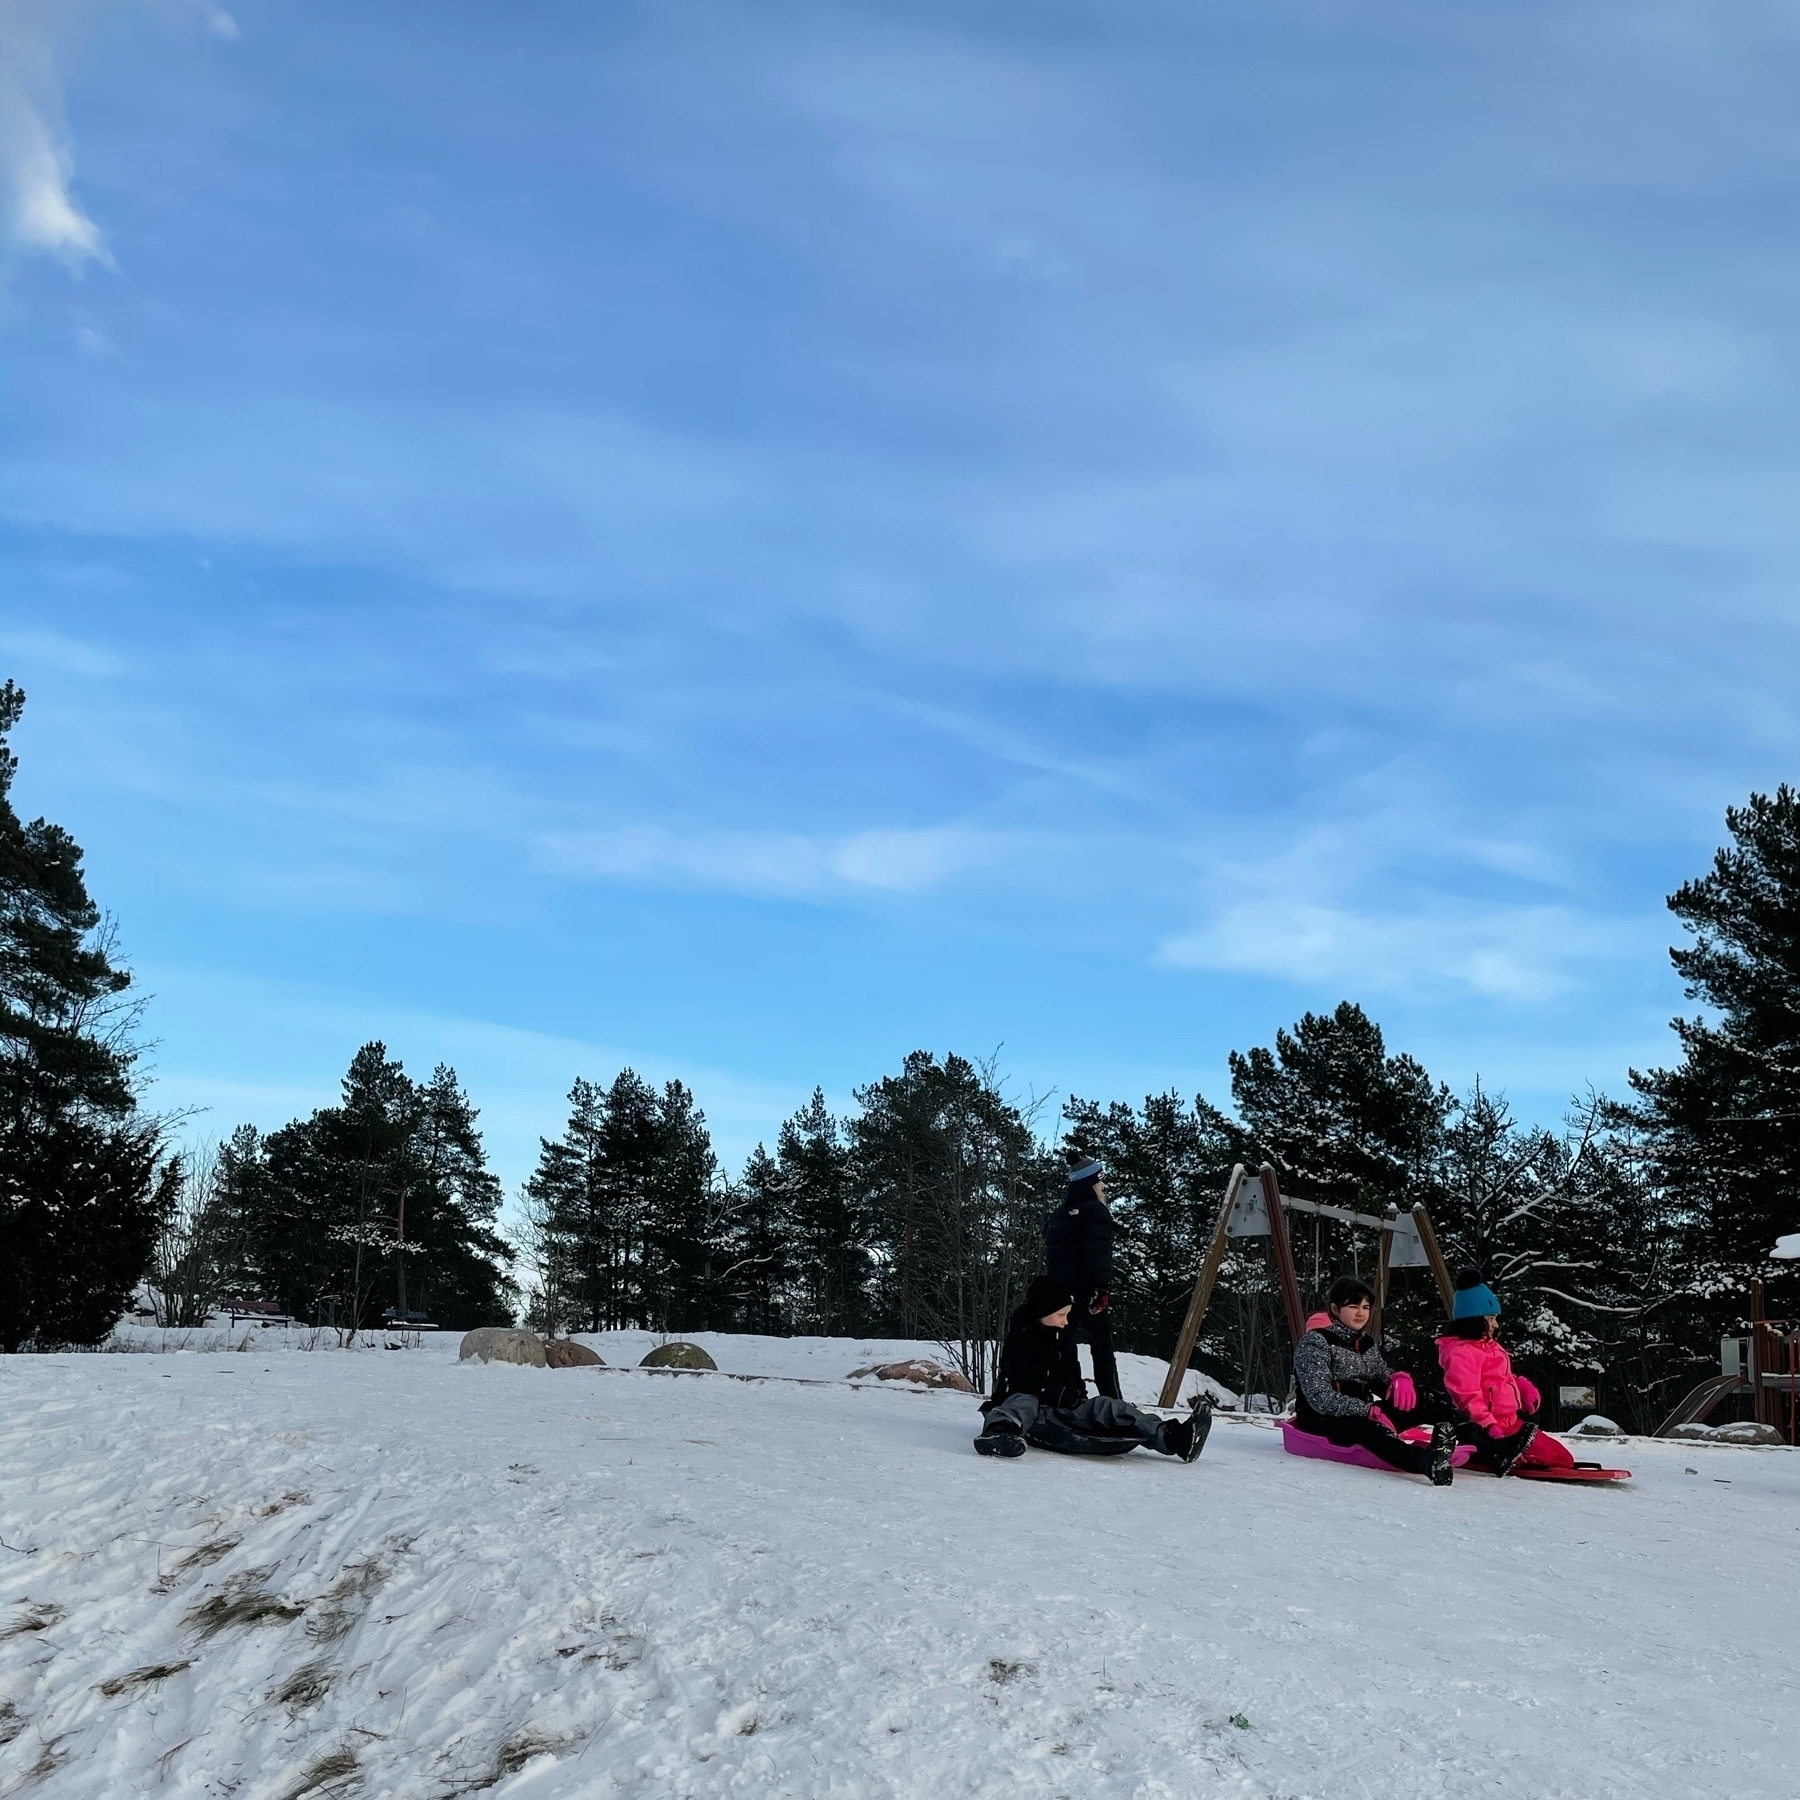 multiple kids waiting for their turn to slide down the hill